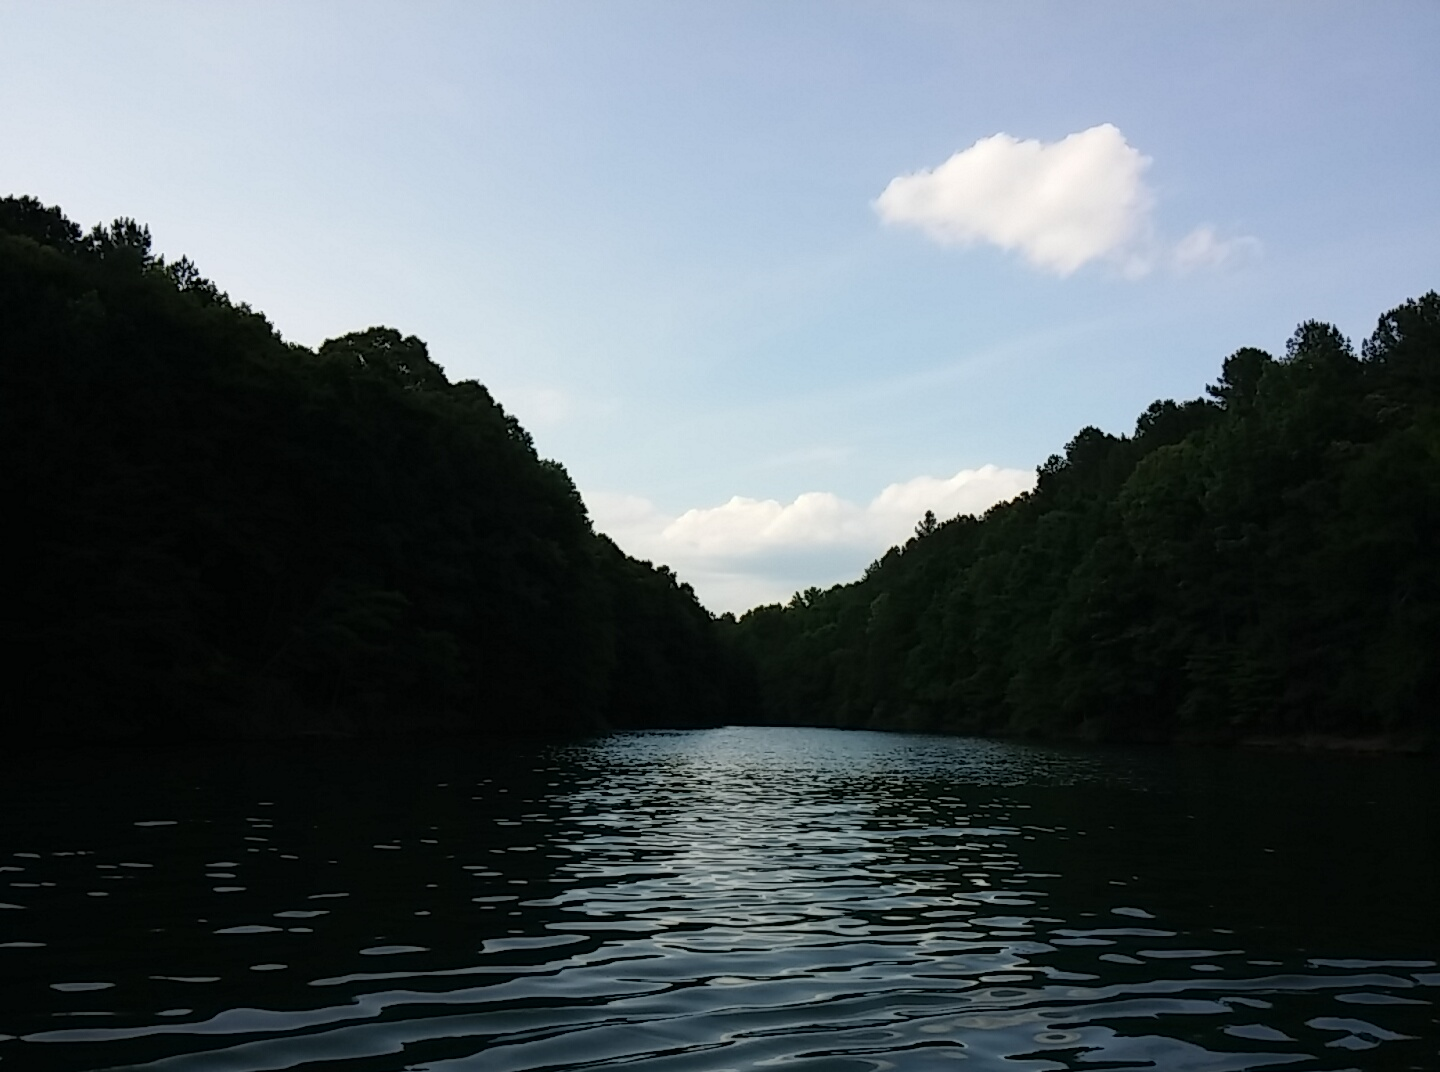 21. Peaceful coves on lakes